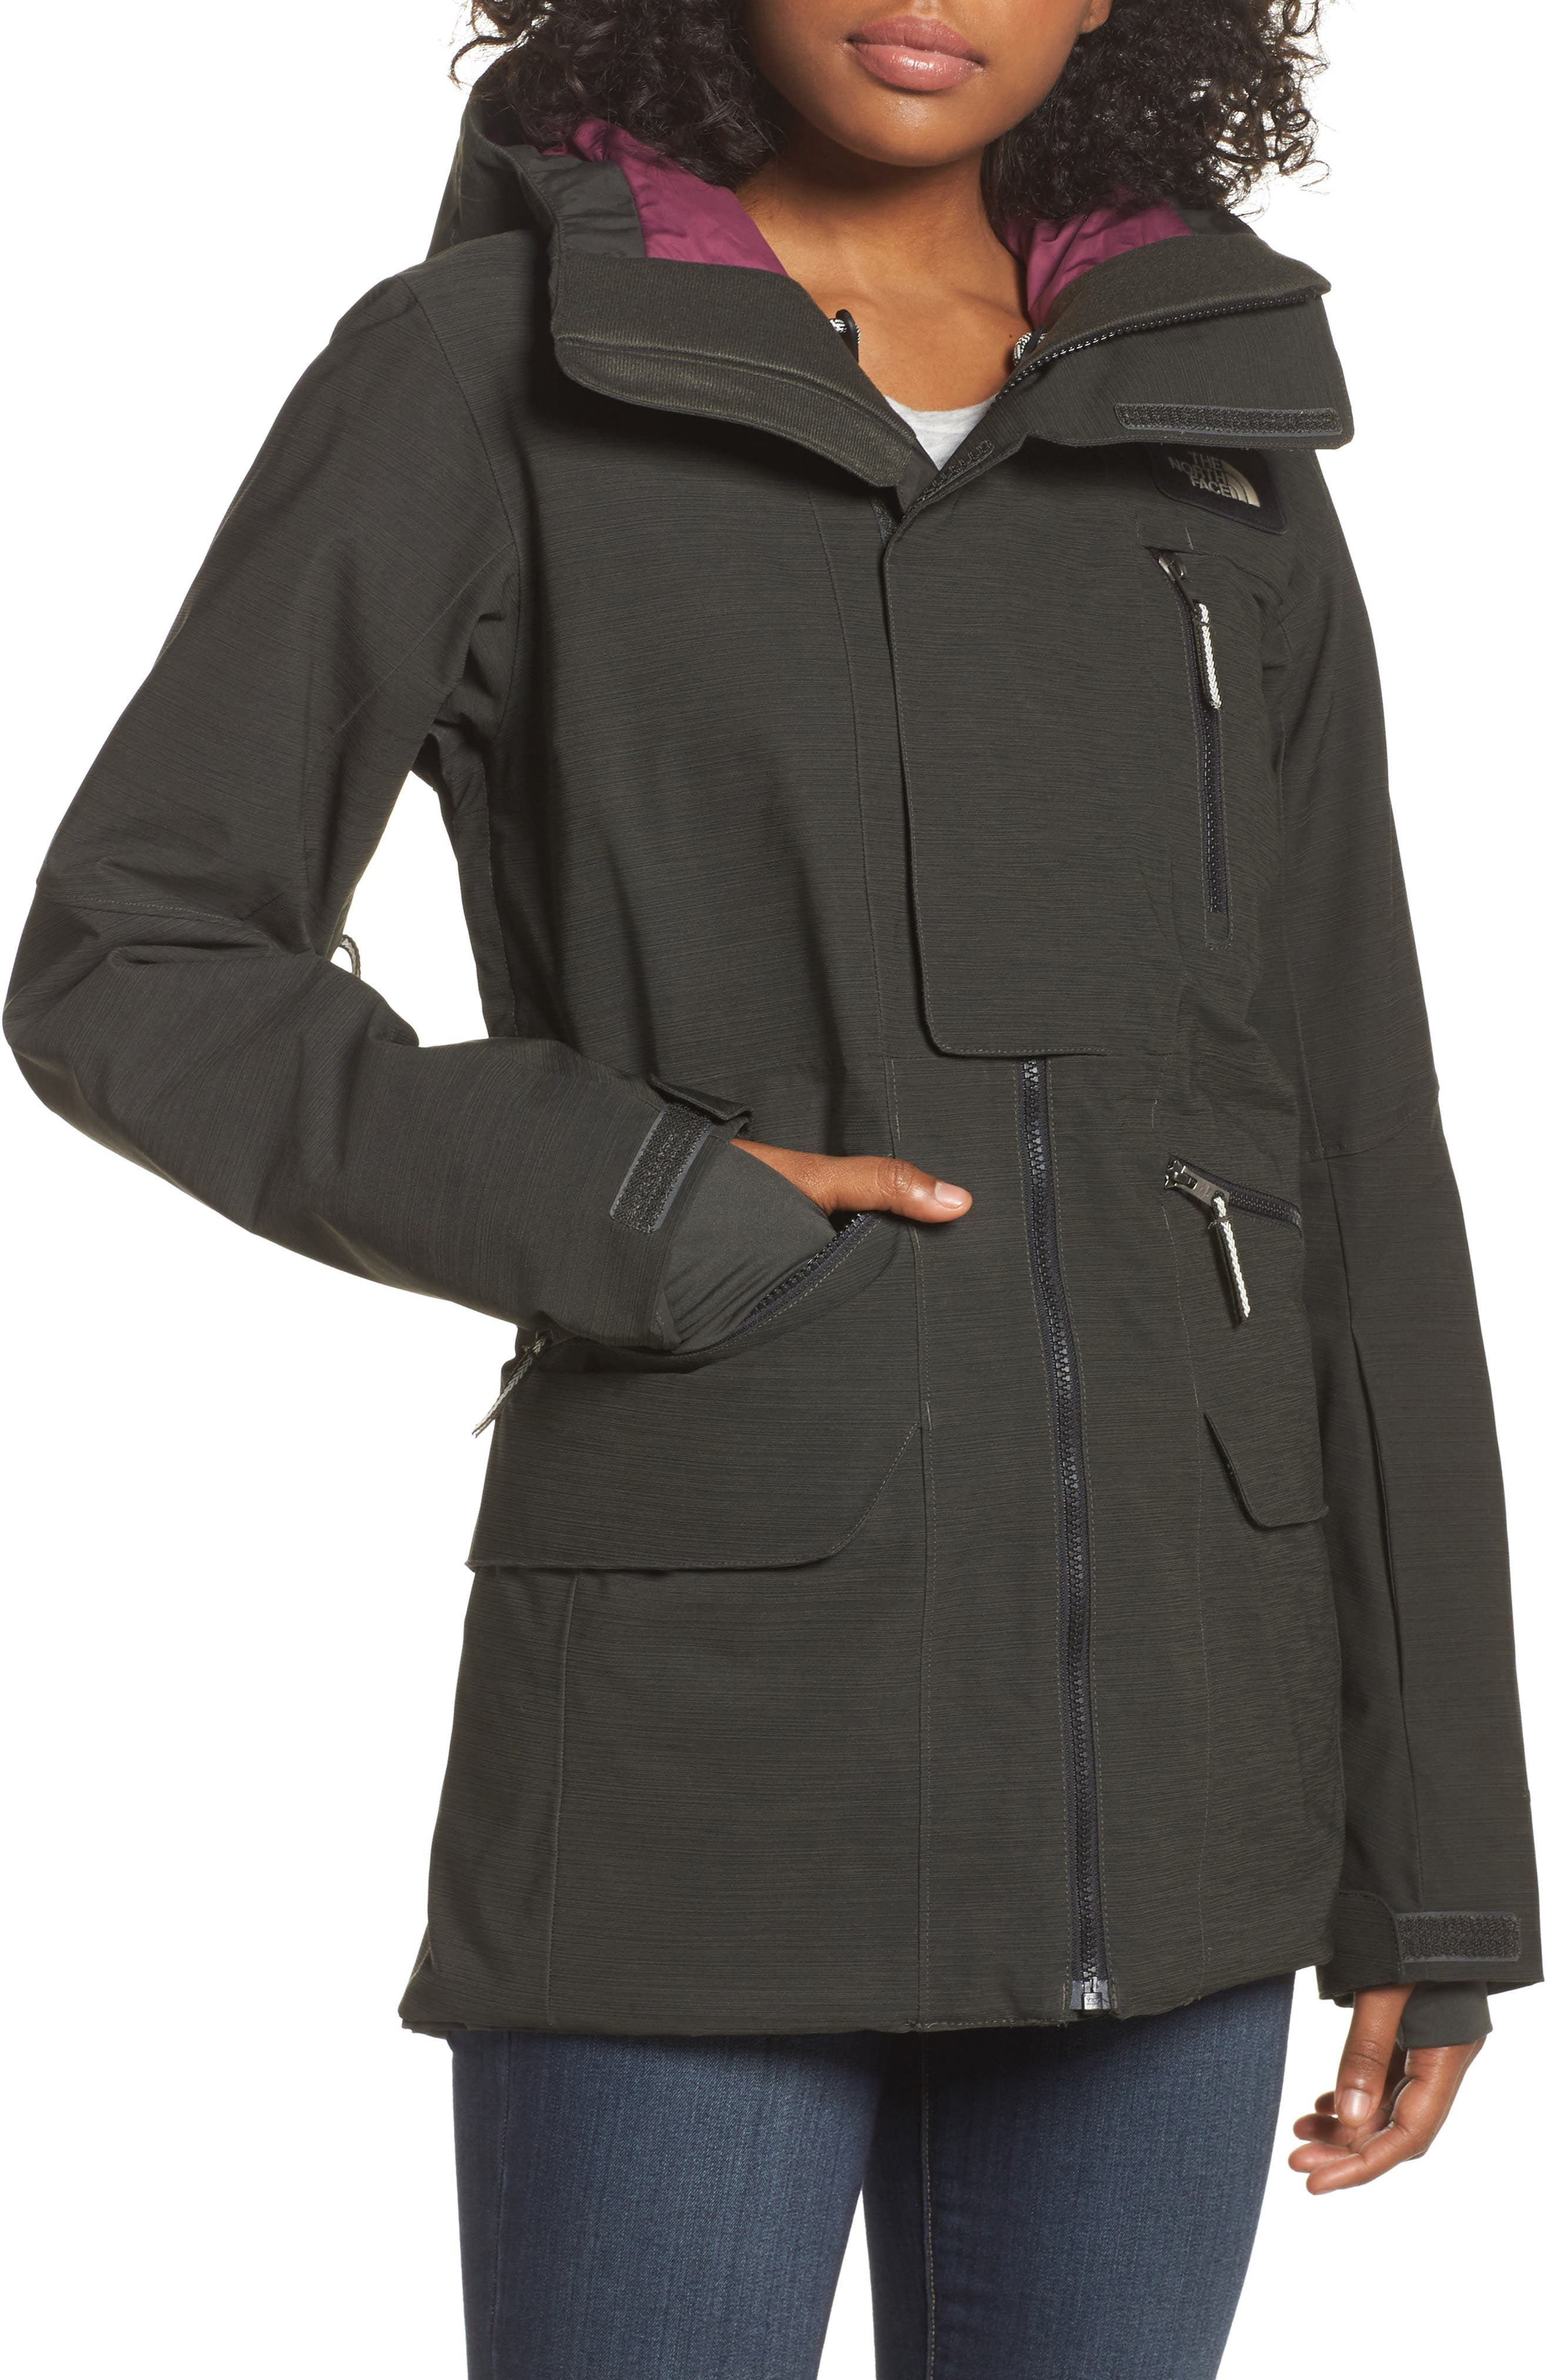 Alternate Image 1 Selected - The North Face Kras Parka